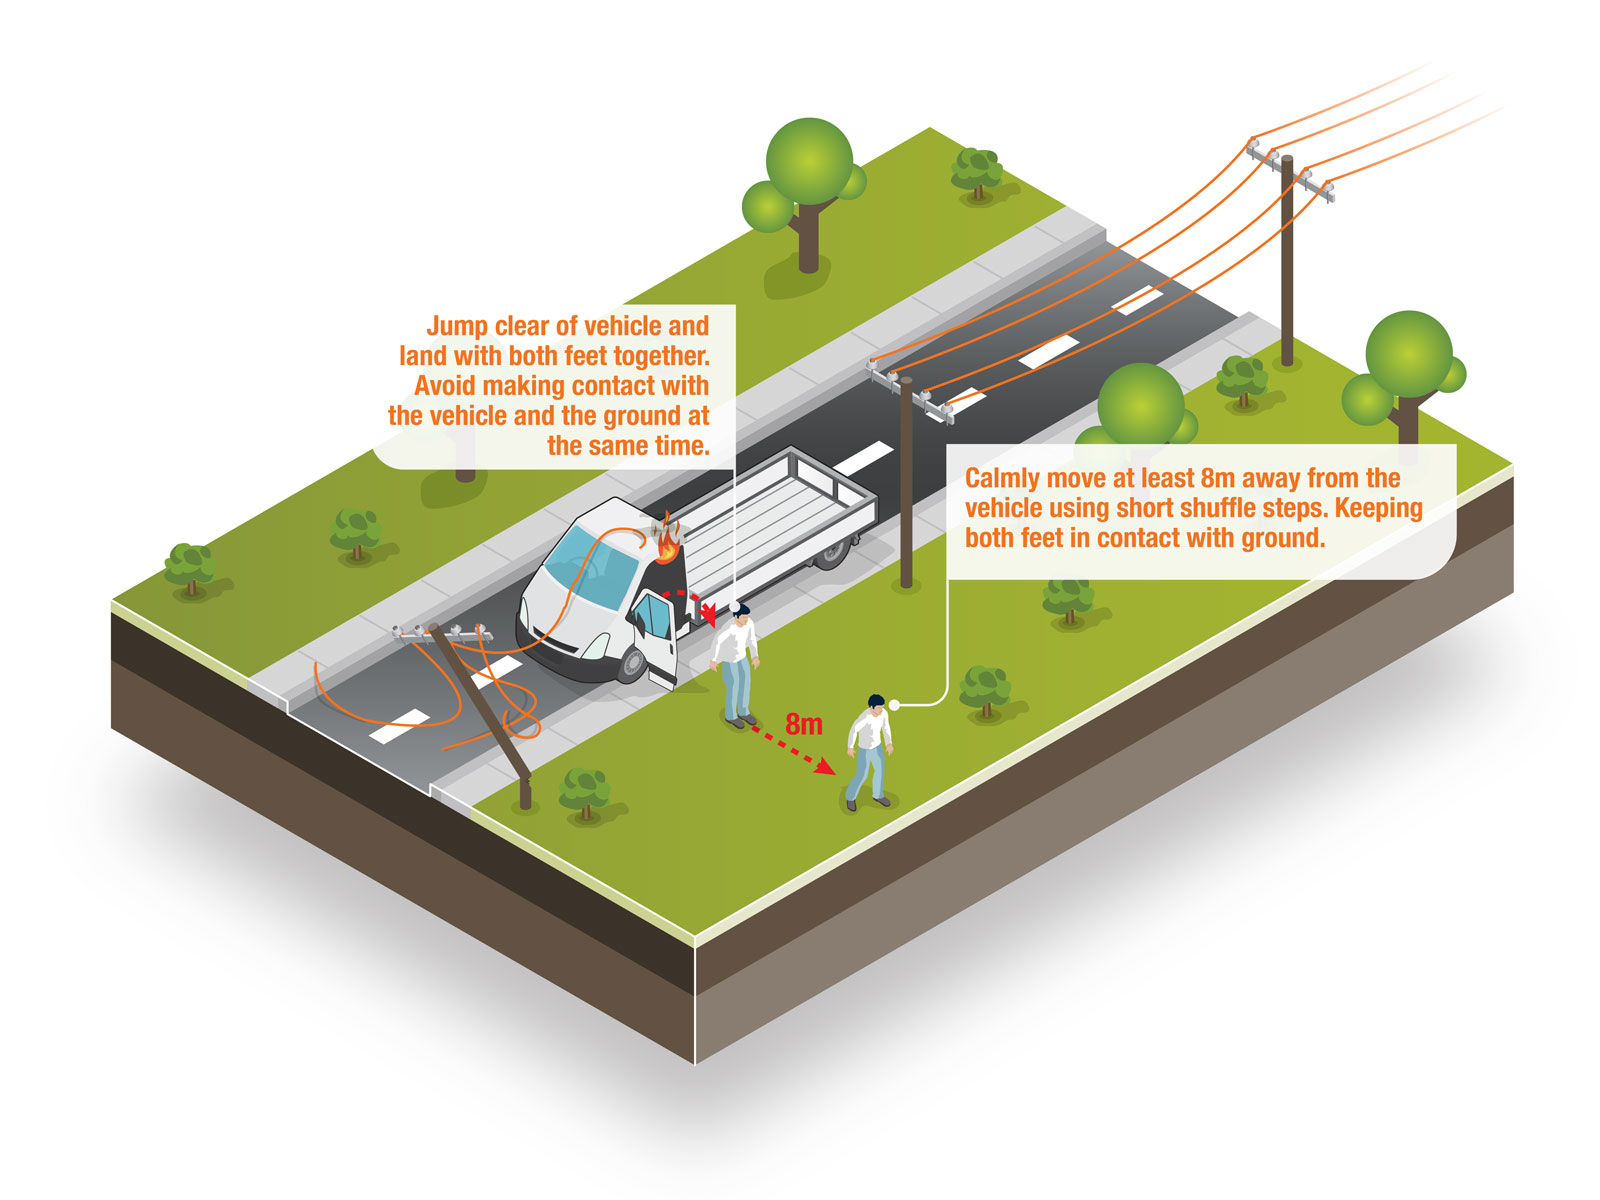 exiting vehicle while a power line has come down technical illustration